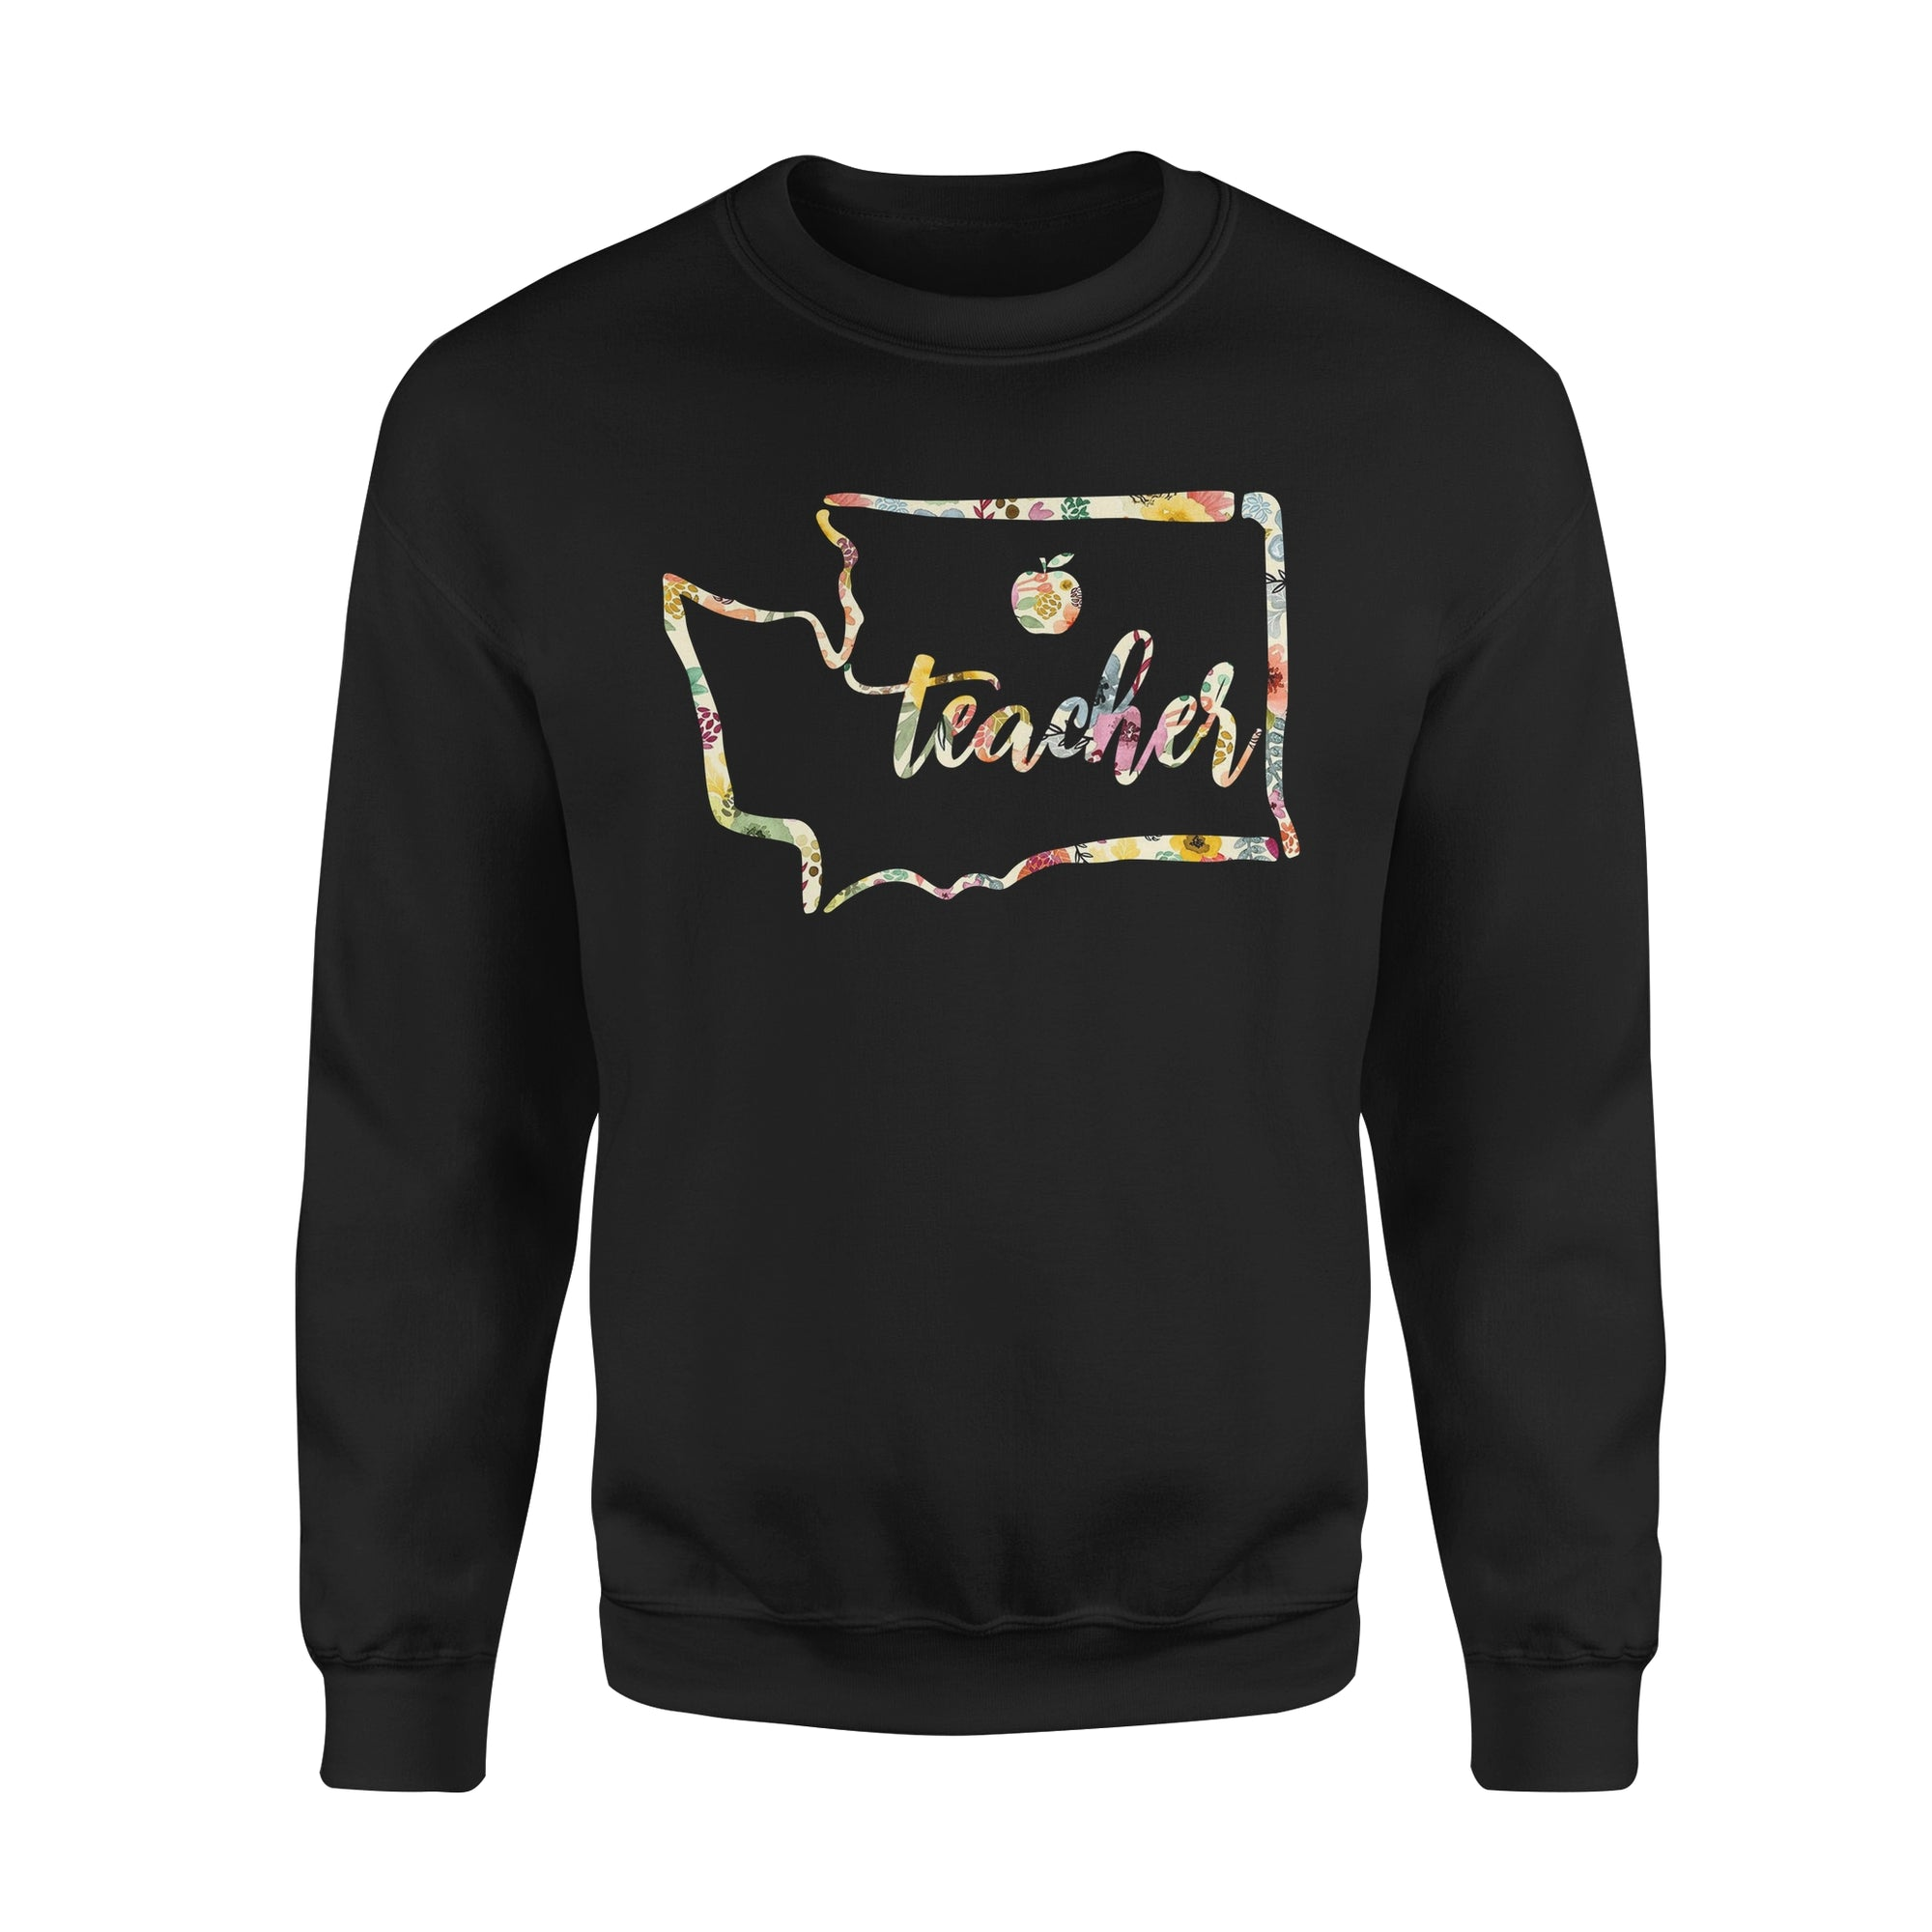 VIRA wahington state map Premium Fleece Sweatshirt for awesome teachers